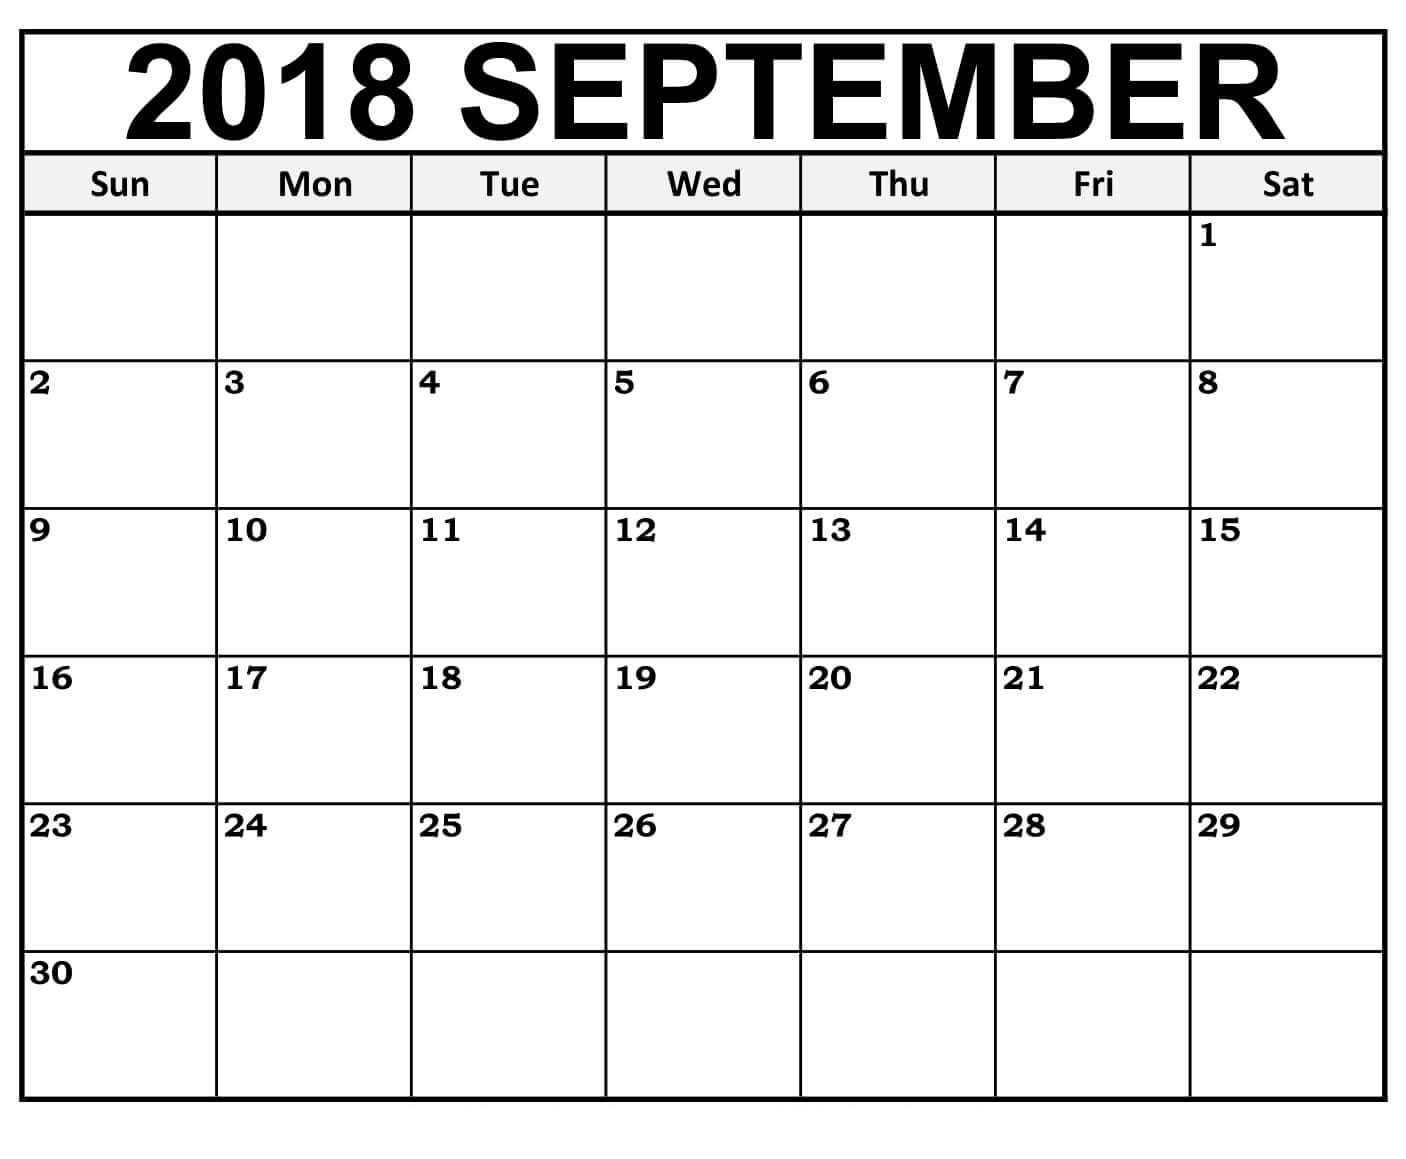 2018 September Calendar Harper Academic